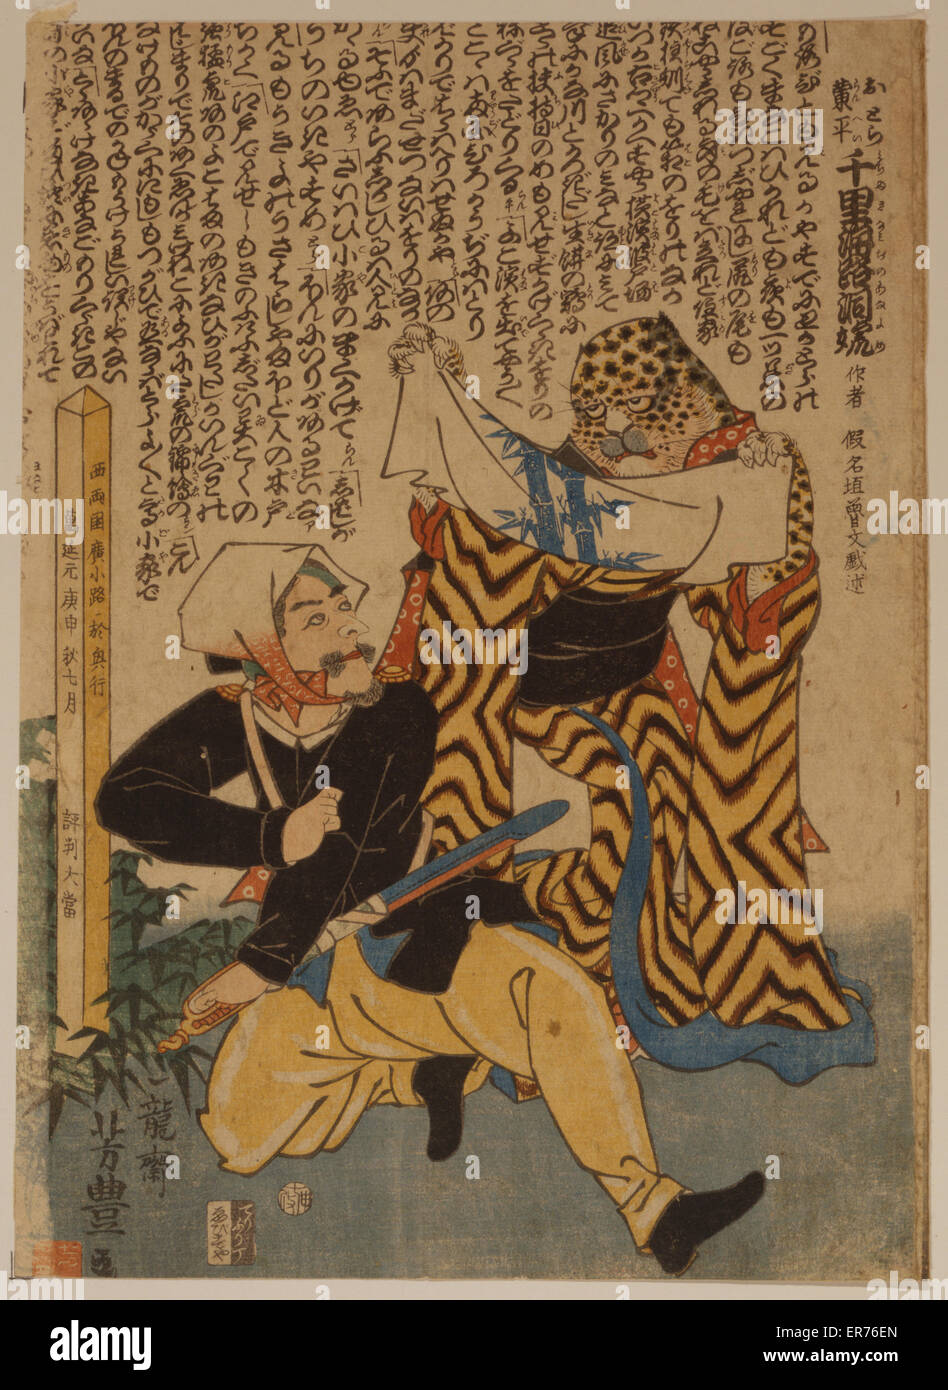 Farcical love story. Japanese print shows two actors in scene from humorous love story, one actor dressed as a tiger. - Stock Image